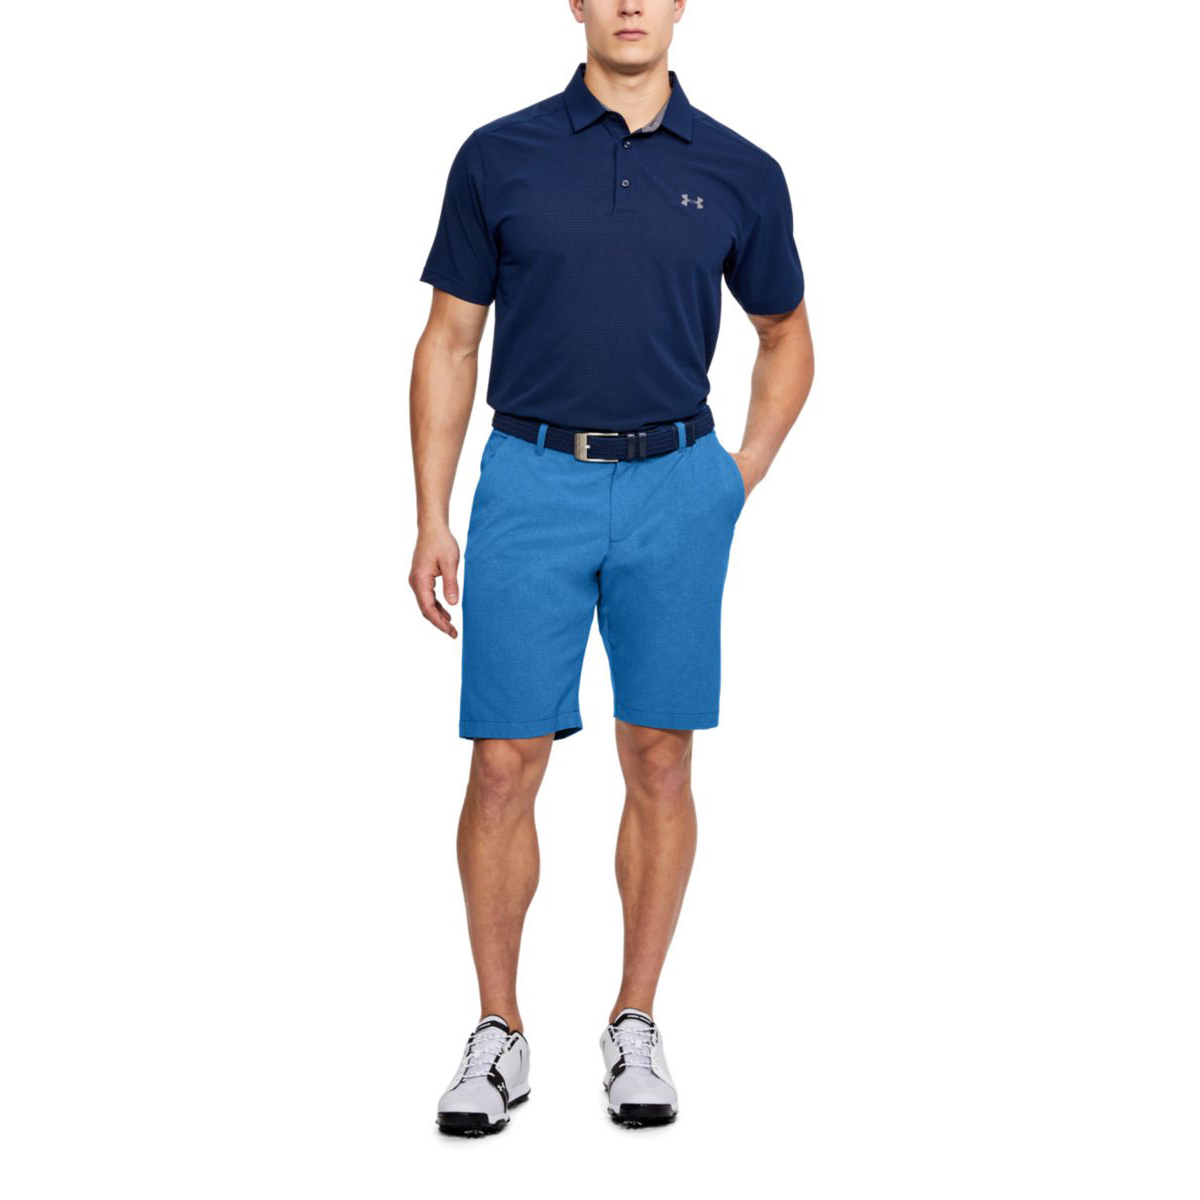 Own the links with Under Armour golf gear or pack up for class with Under Armour backpacks and bags. Heading into backcountry? Suit up with Under Armour hunting apparel. Under Armour women's gear includes fresh styles for training and everyday life. Think stylish-yet-functional pieces for all your training needs. And kids love Under Armour athletic styles for budding athletes.